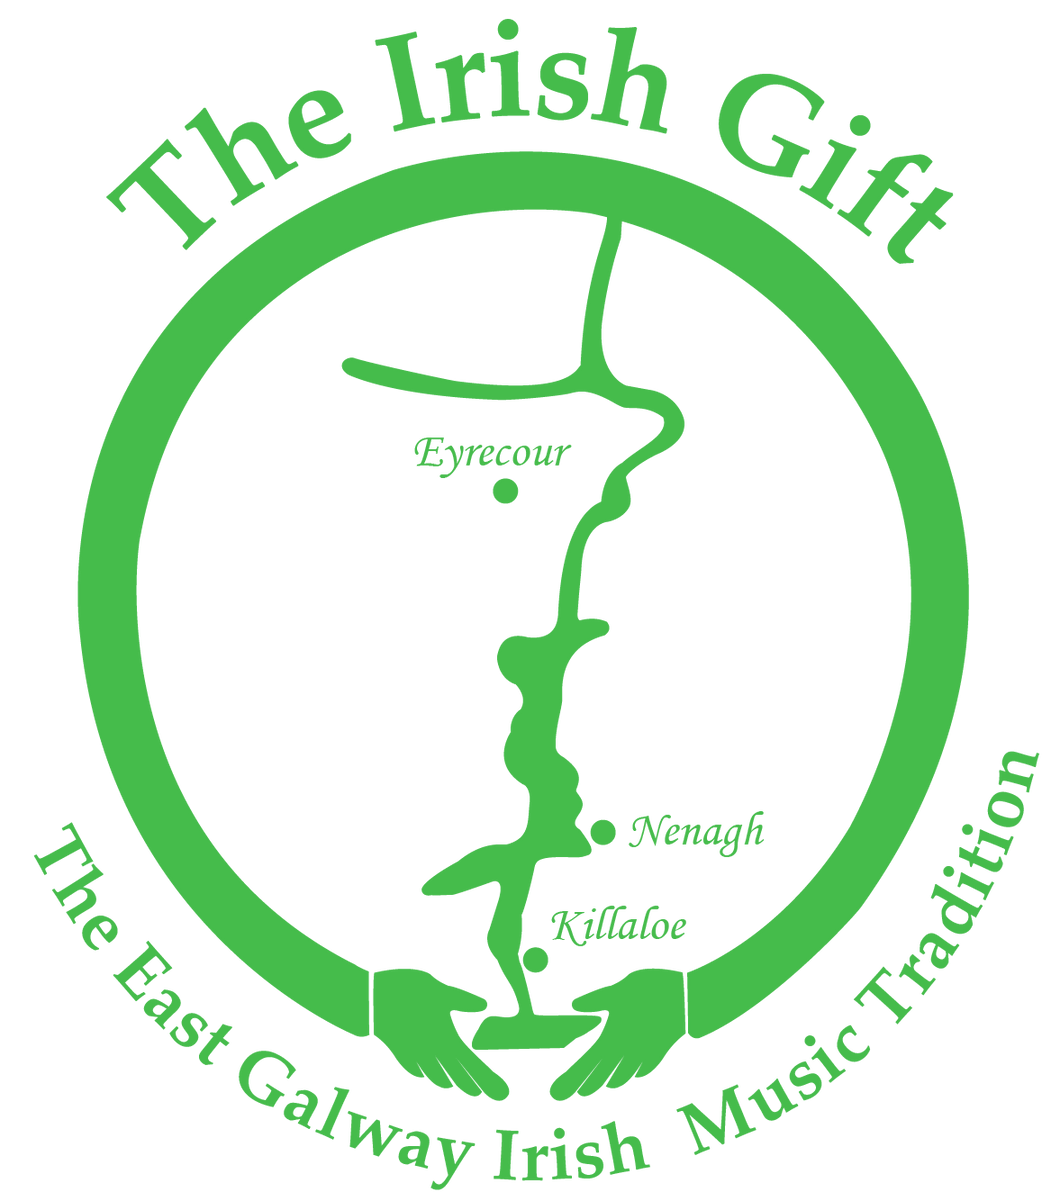 The East Galway Irish Music Tradition Mastermind